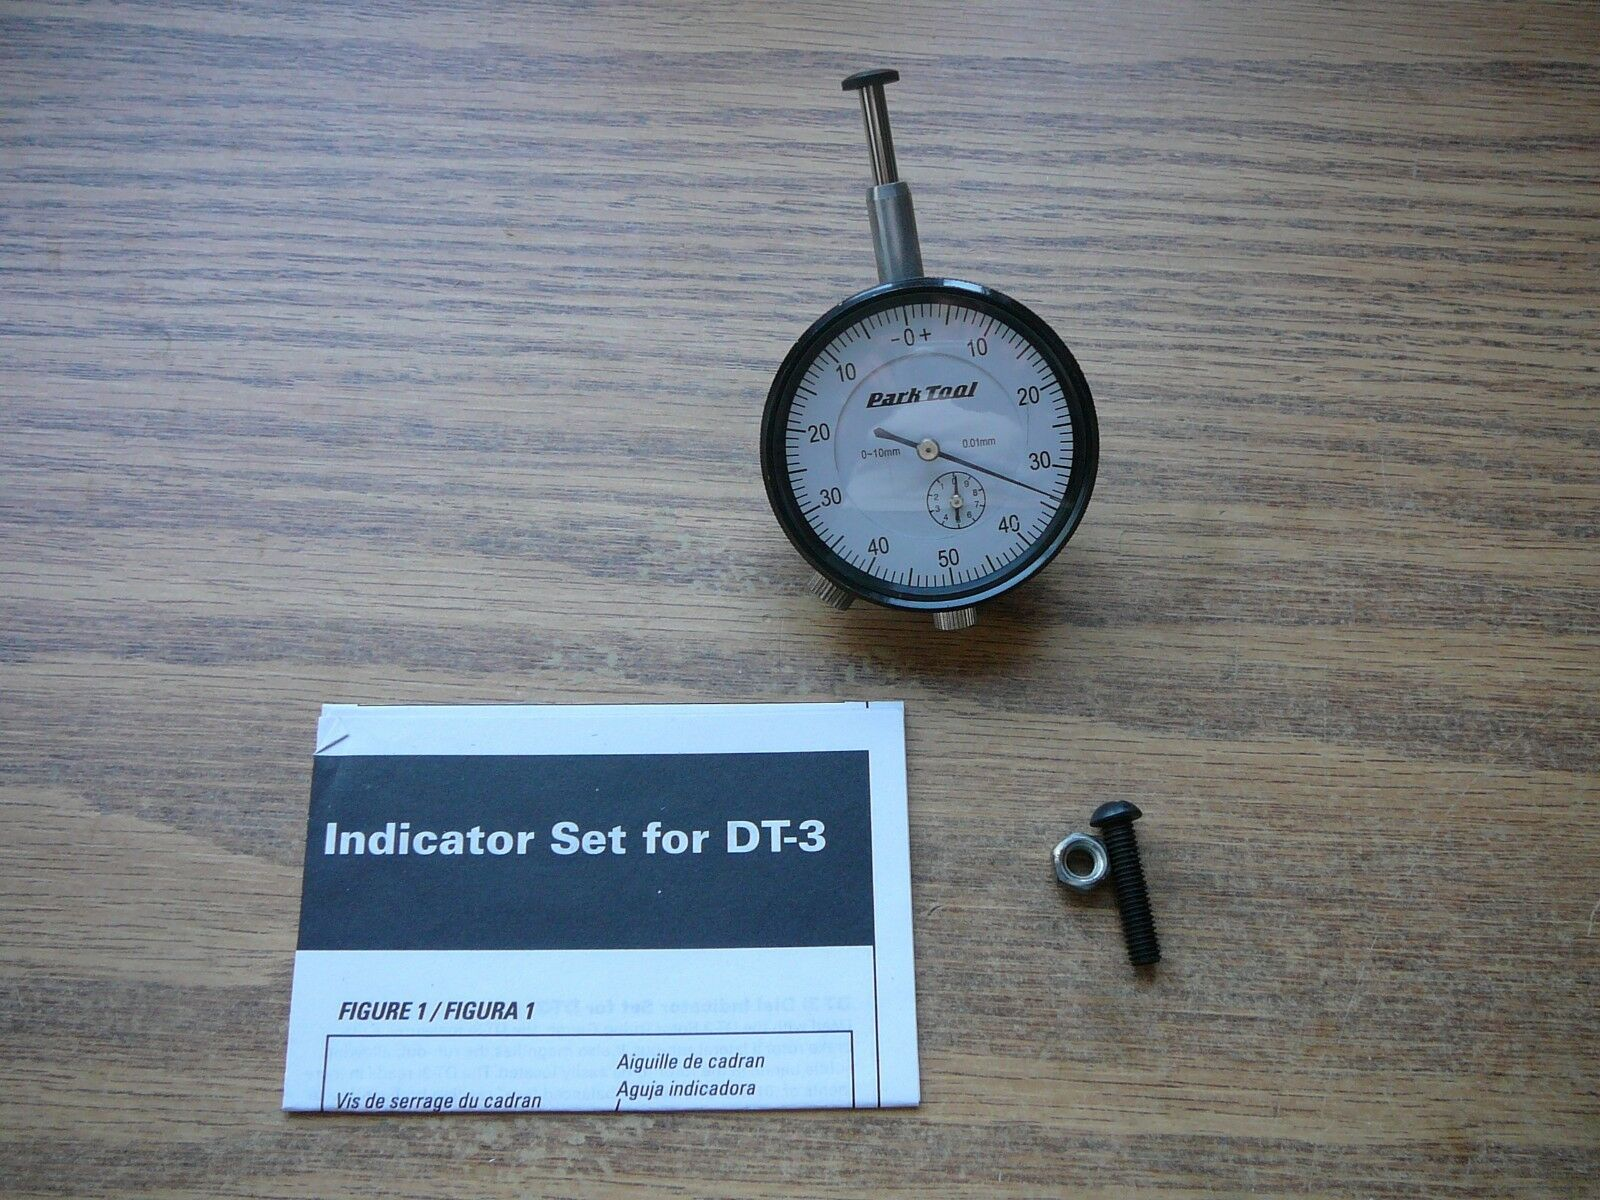 Precise Dial Indicator Park Tool DT-3i For DT-3 redor  Truing Gauge Disc Brake  high-quality merchandise and convenient, honest service